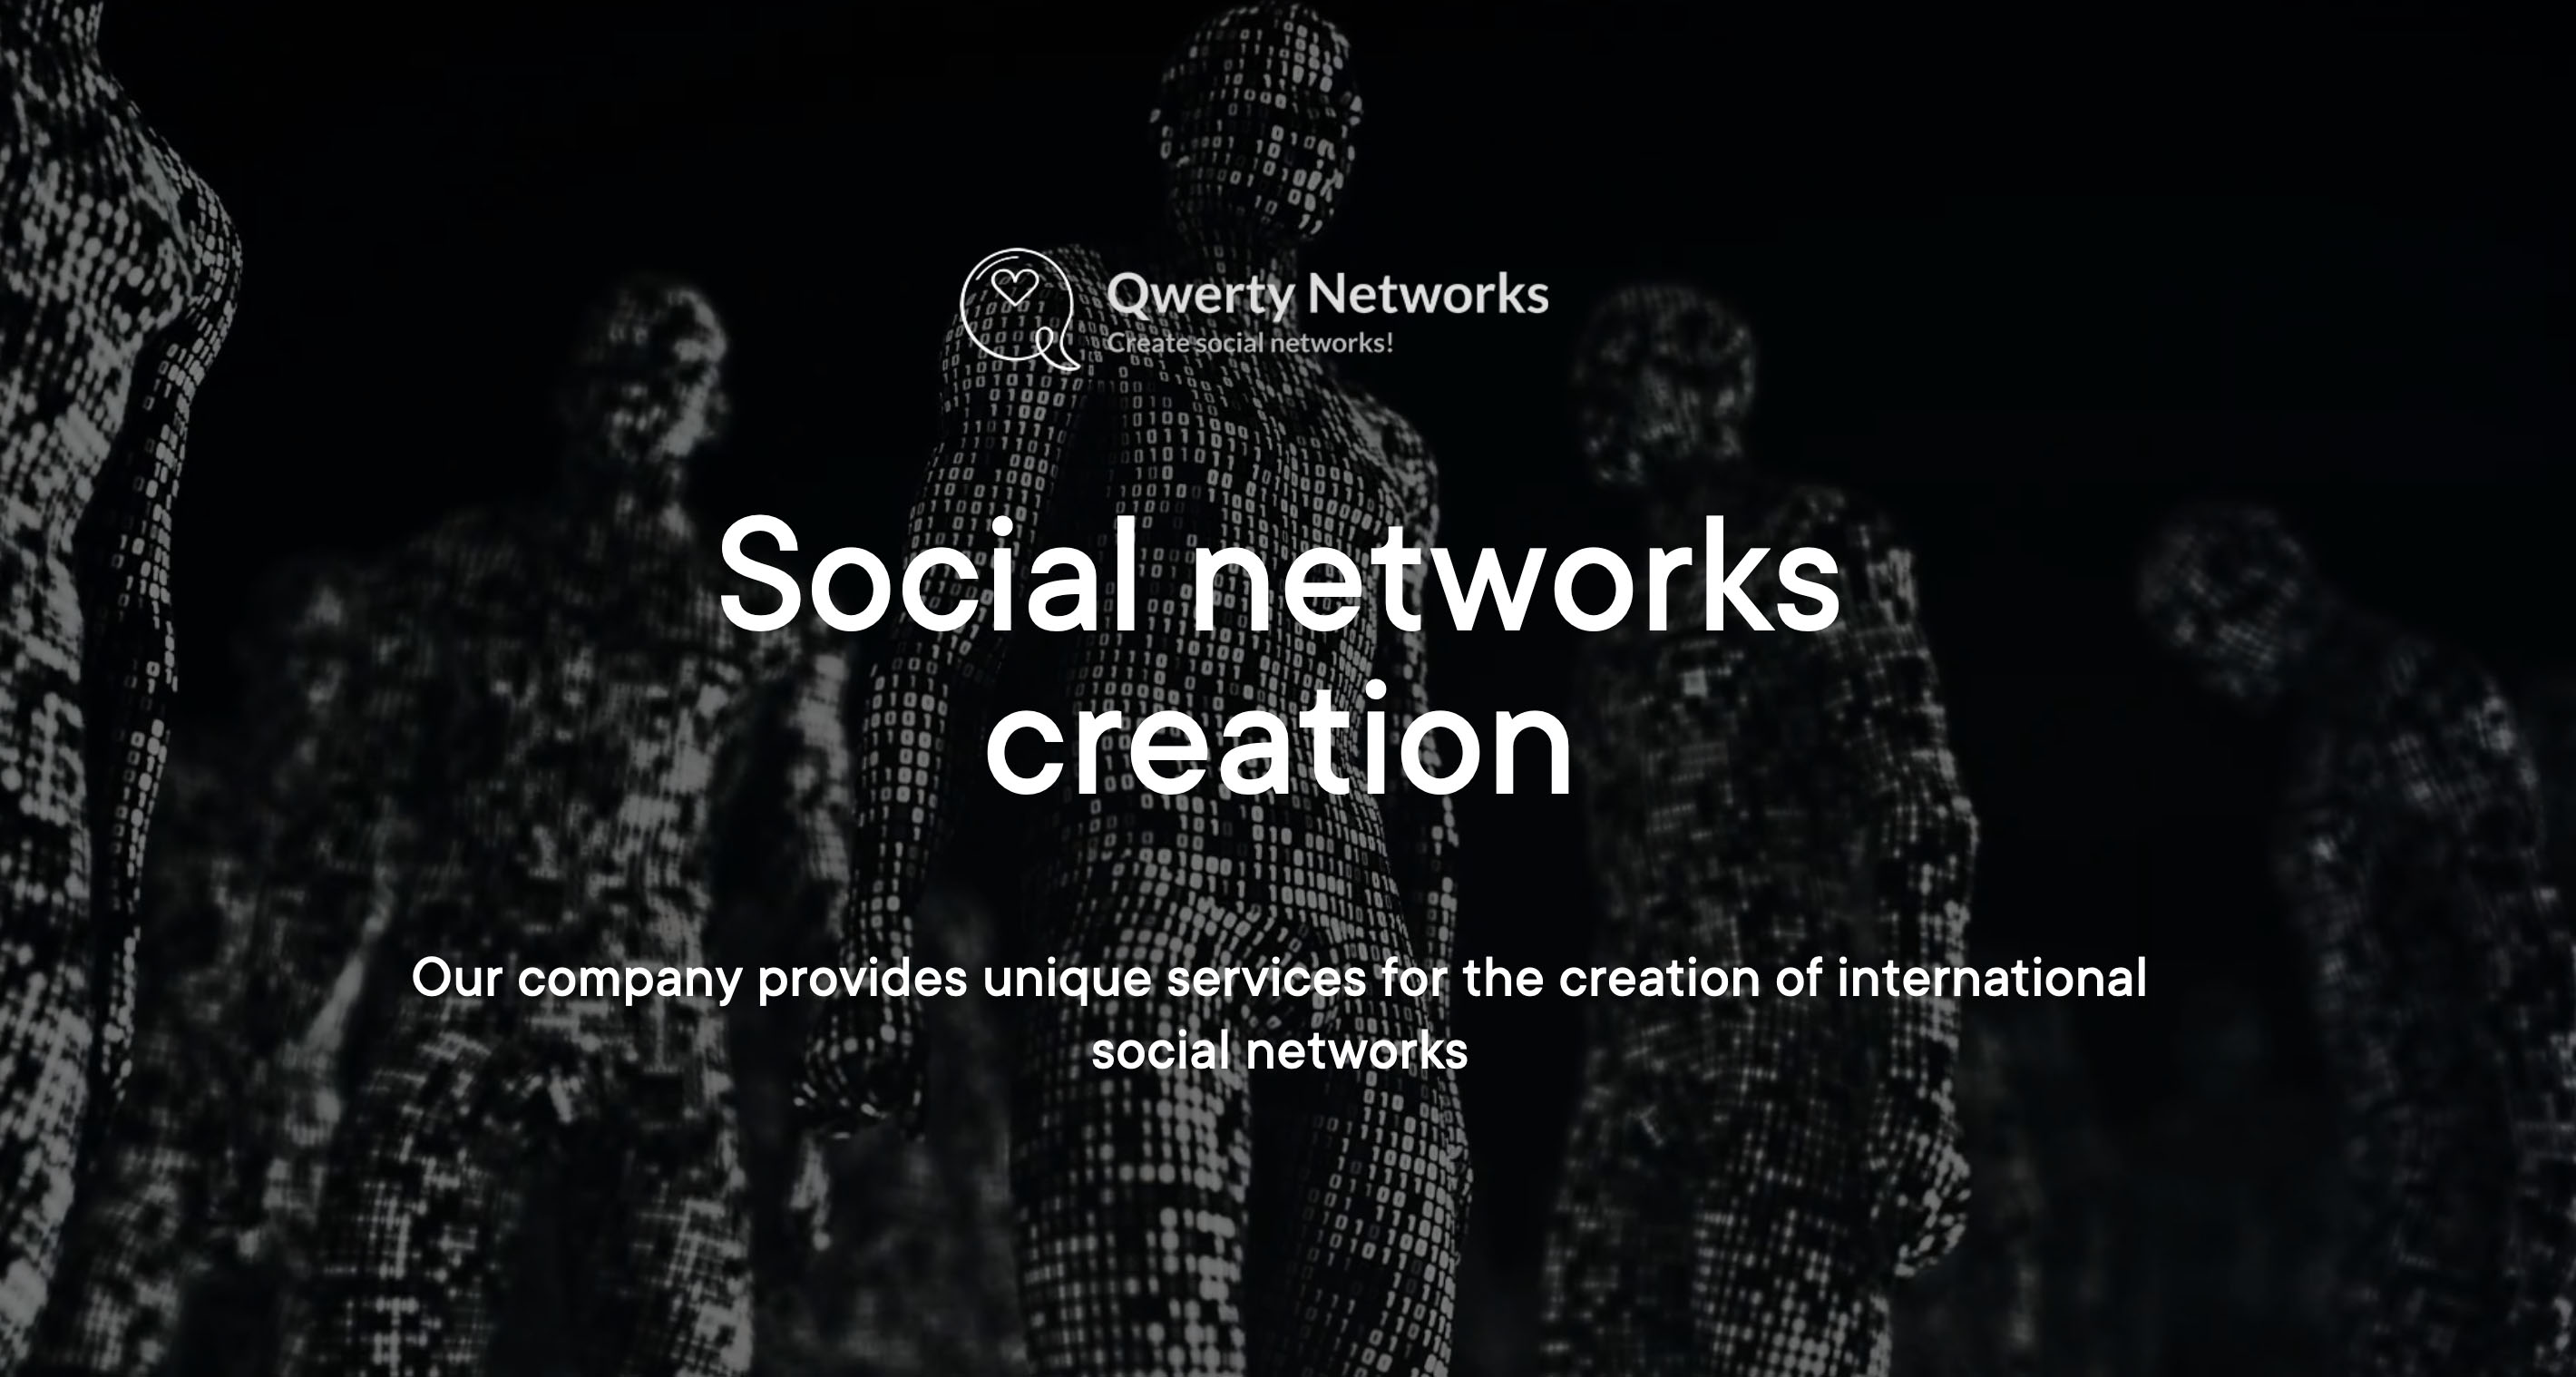 Development and creation of social networks. New Qwerty Networks experience